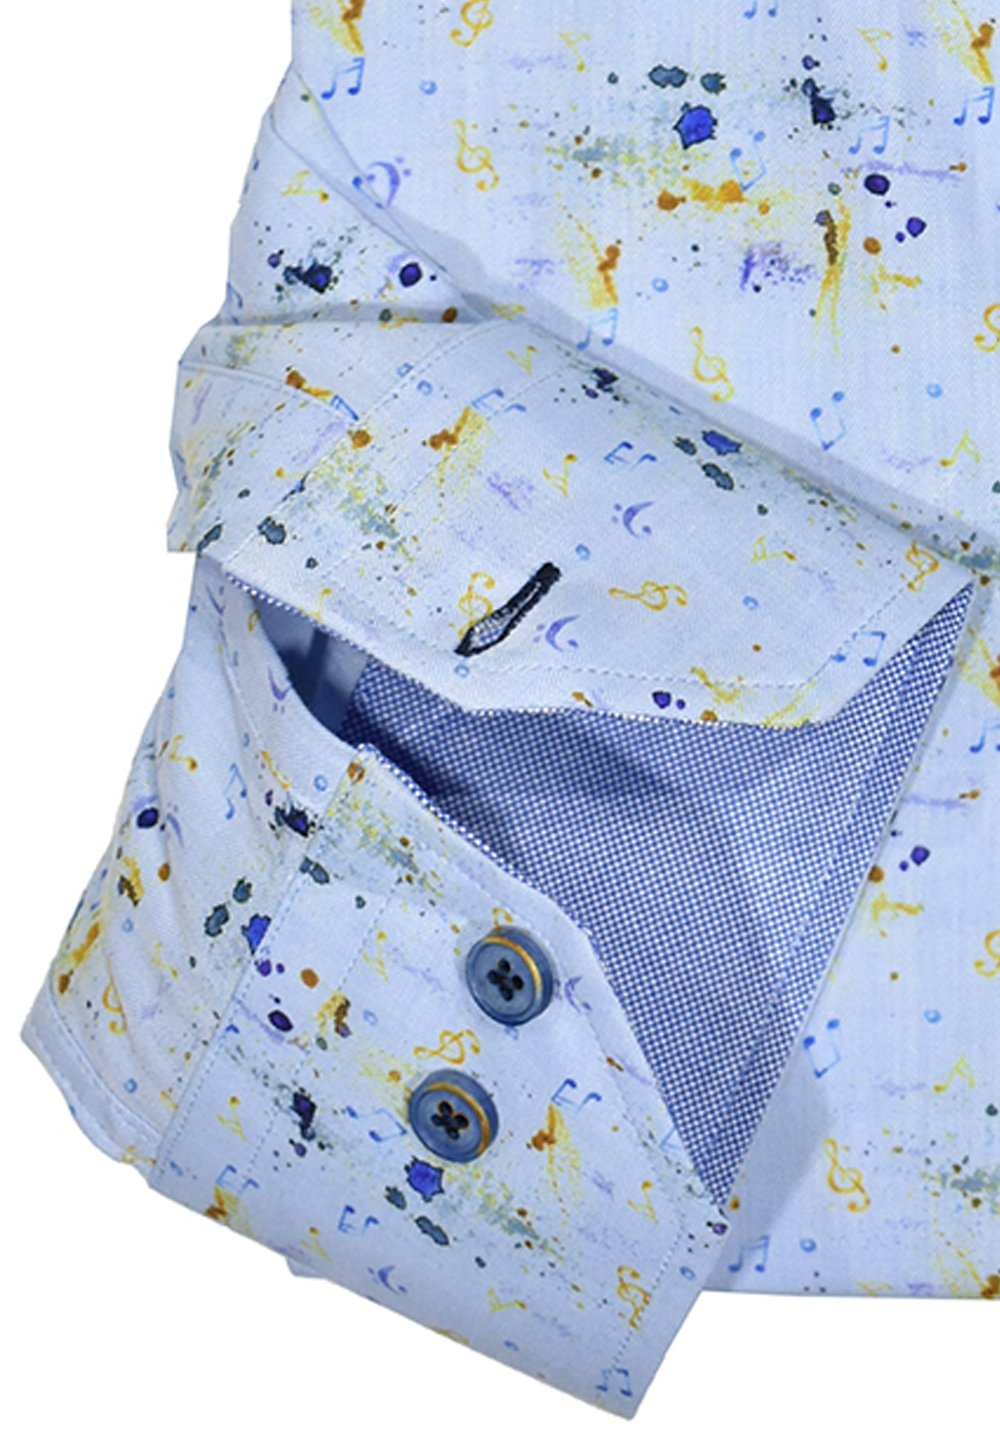 W1030 Blue Note Cotton Shirt - Marcello Sport